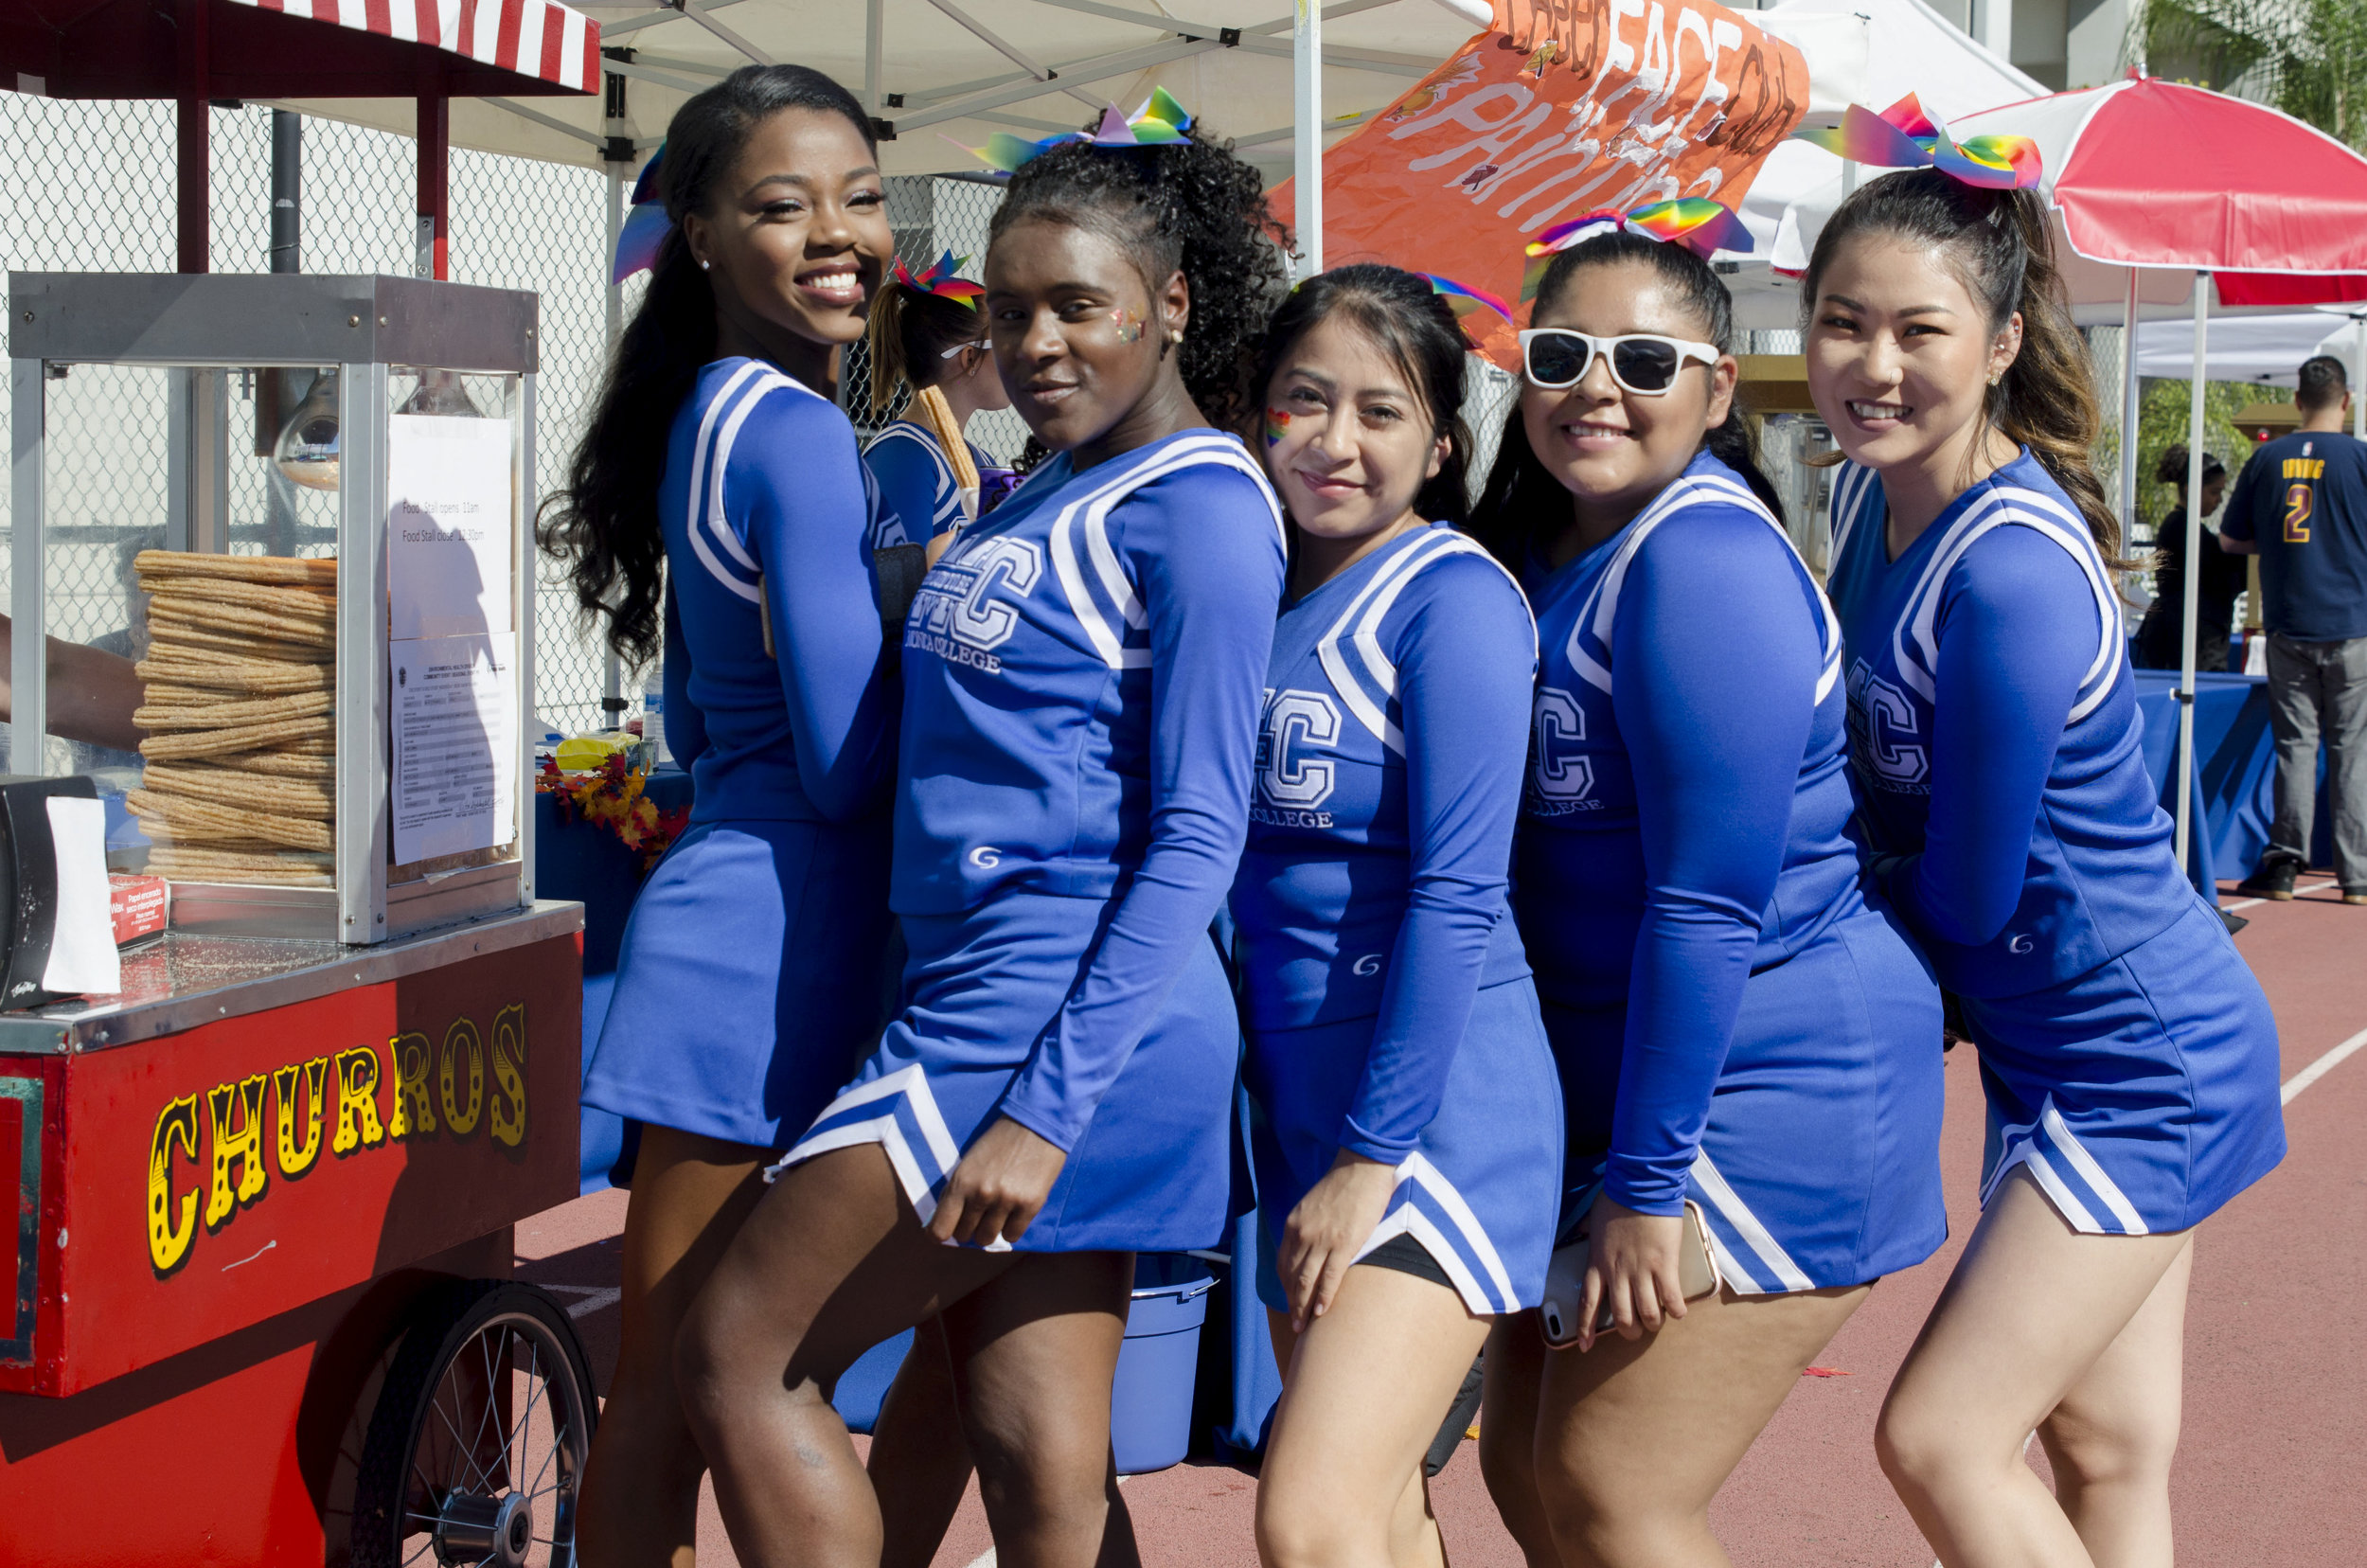 Santa Monica Cheerleaders pose as they wait to get the free churros before the start of the homecoming game.  Santa Monica College football field in Santa Monica,Calif. November 4, 2017. (Photo by: Diana Parra Garcia)